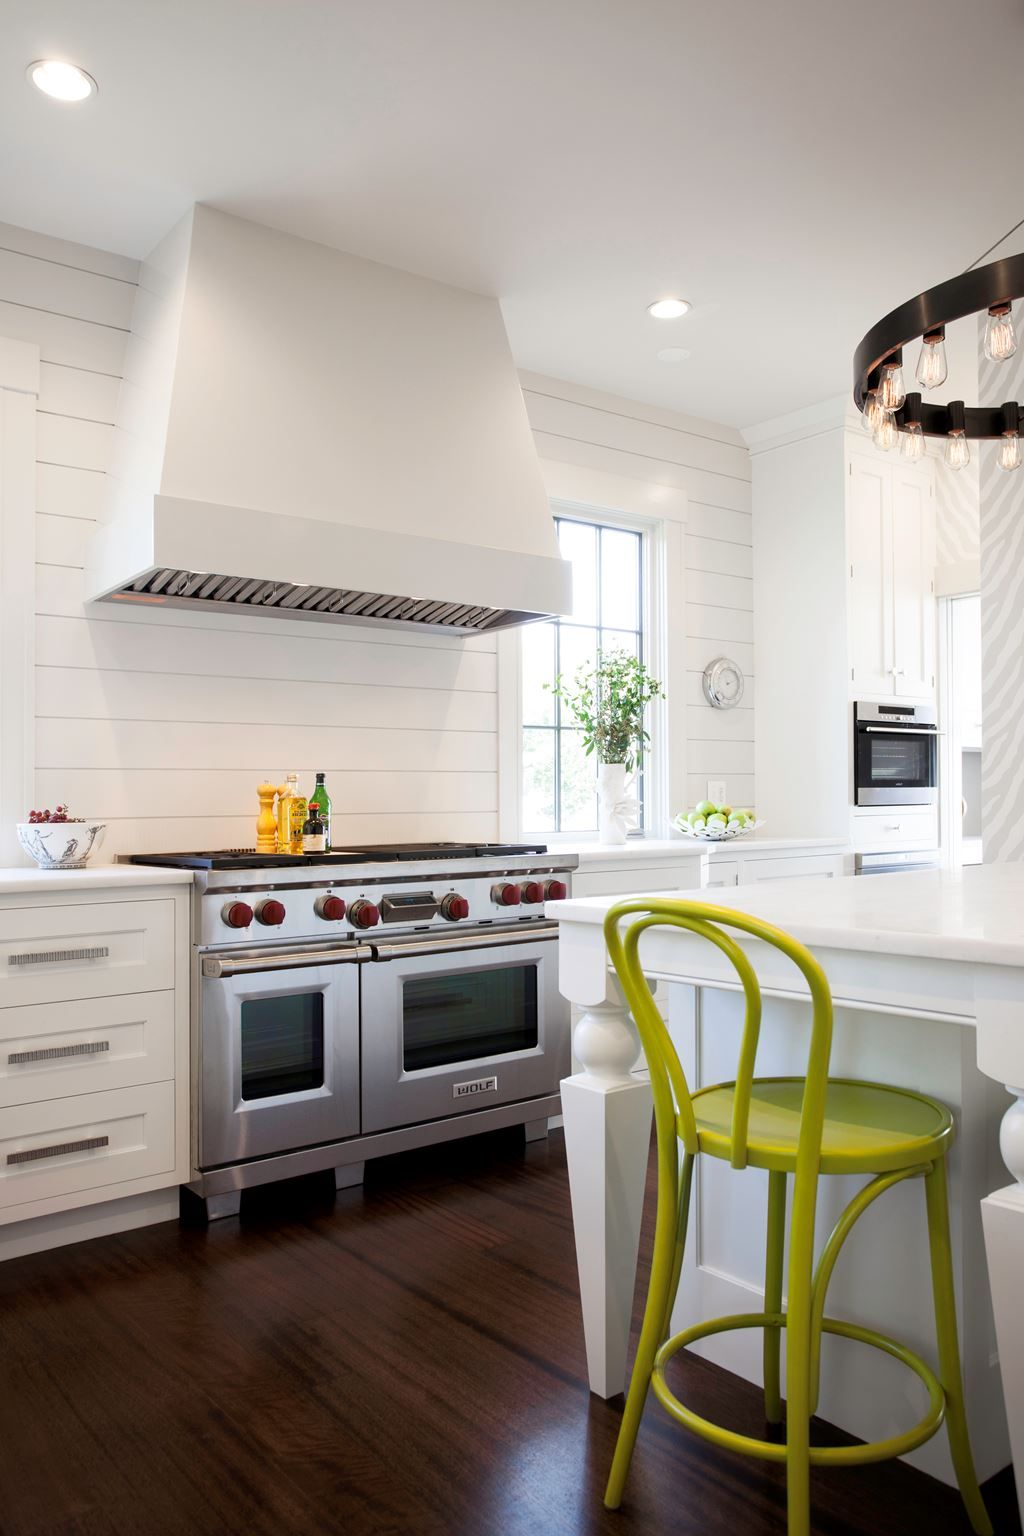 Contemporary Traditional Kitchen | Kitchens | Pinterest ... on contemporary kitchen trends, contemporary kitchen diy, contemporary kitchen decorating ideas, bedroom remodeling ideas, contemporary countertops ideas, contemporary country kitchens, contemporary siding ideas, contemporary kitchen appliances, contemporary outdoor kitchen ideas, contemporary kitchen cabinetry, contemporary kitchen colors ideas, contemporary kitchen doors, contemporary kitchen cabinet ideas, contemporary tile ideas, contemporary rustic kitchen, contemporary kitchen furniture, contemporary kitchen islands, contemporary kitchen storage, contemporary kitchen countertops, contemporary kitchen design,